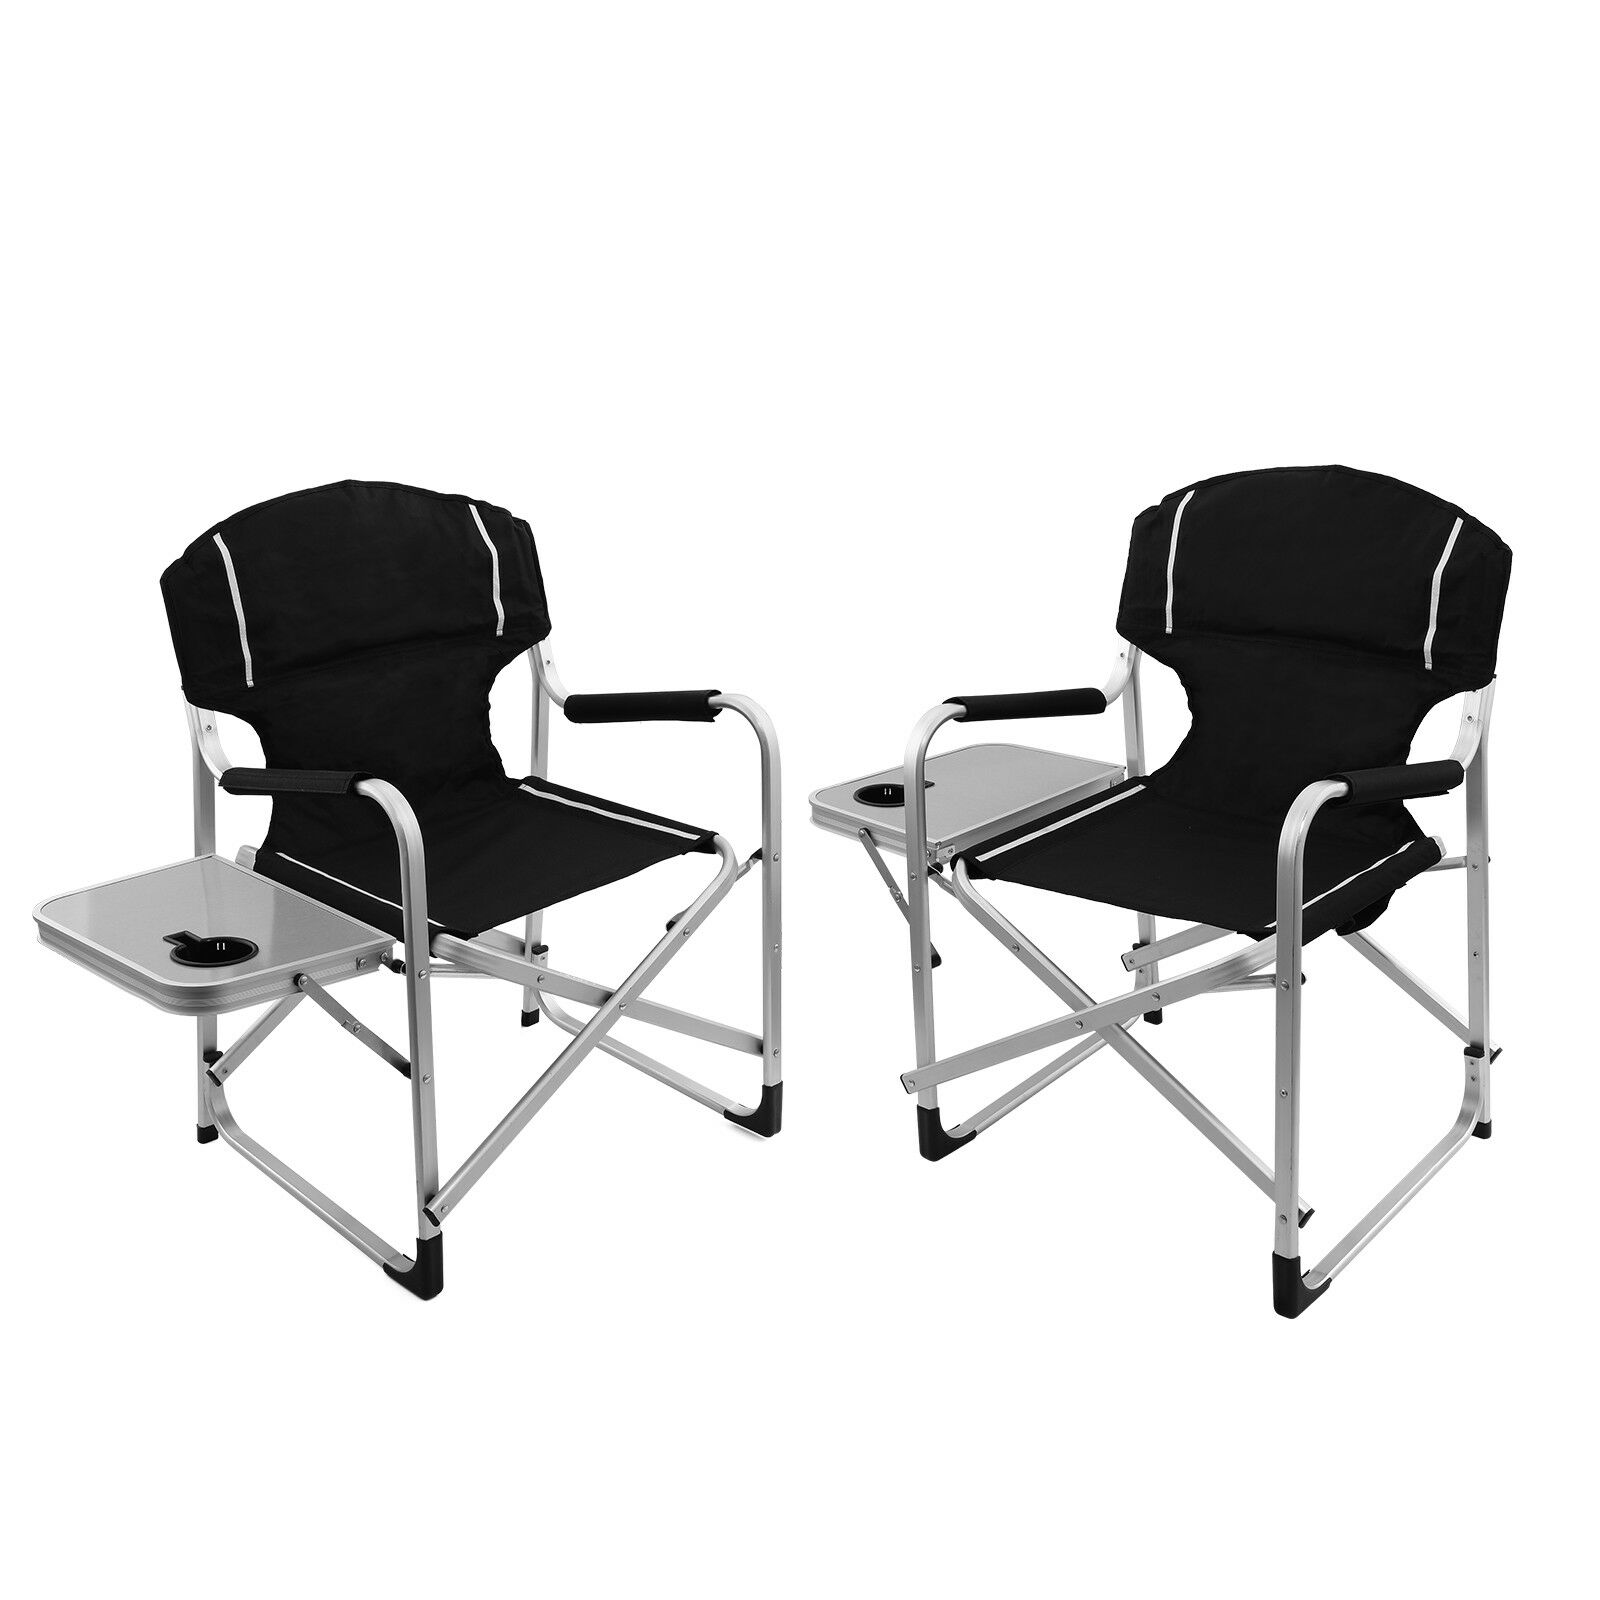 Incredible Details About 2Pc Folding Directors Chair Aluminum Camping Lightweight Chair With Side Table Uwap Interior Chair Design Uwaporg